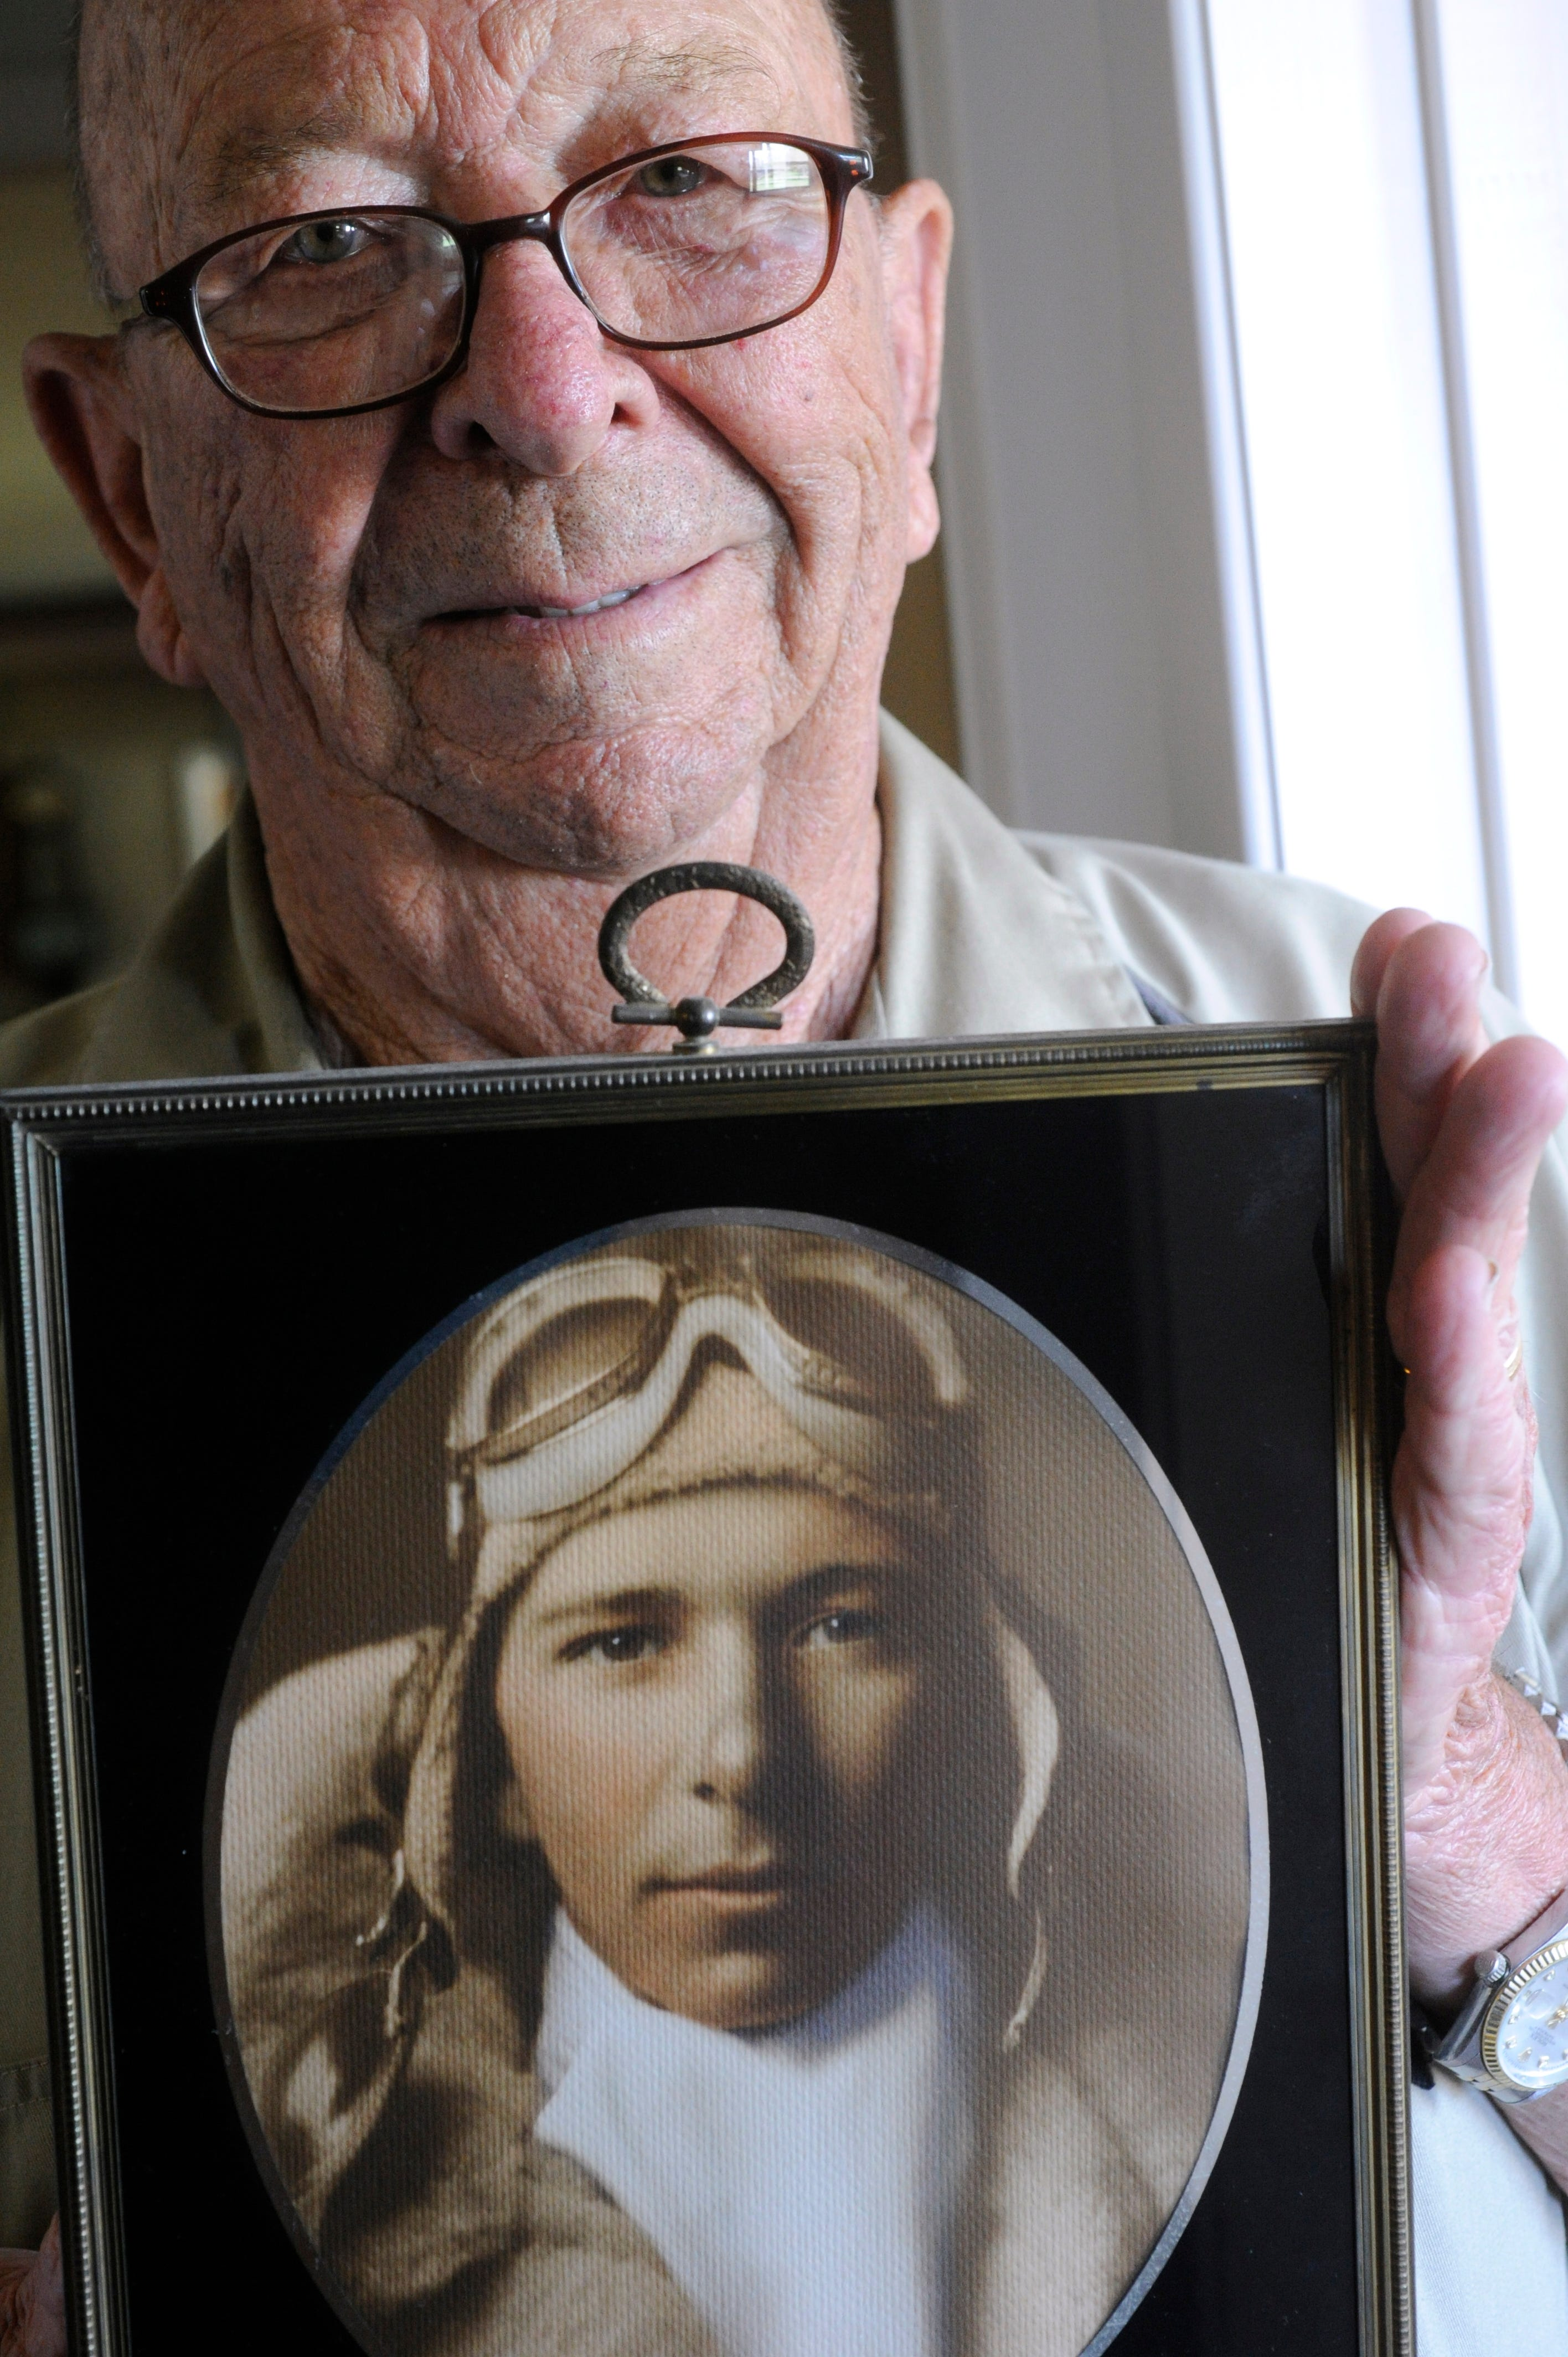 Wes Hays, former mayor of Winters and World War II combat pilot, at his home in Novice on May 26, 2011. Hays holds a portrait of himself taken at the U.S. Naval Schools of Photography in1 943 before eventually shipping out to the Pacific theater.